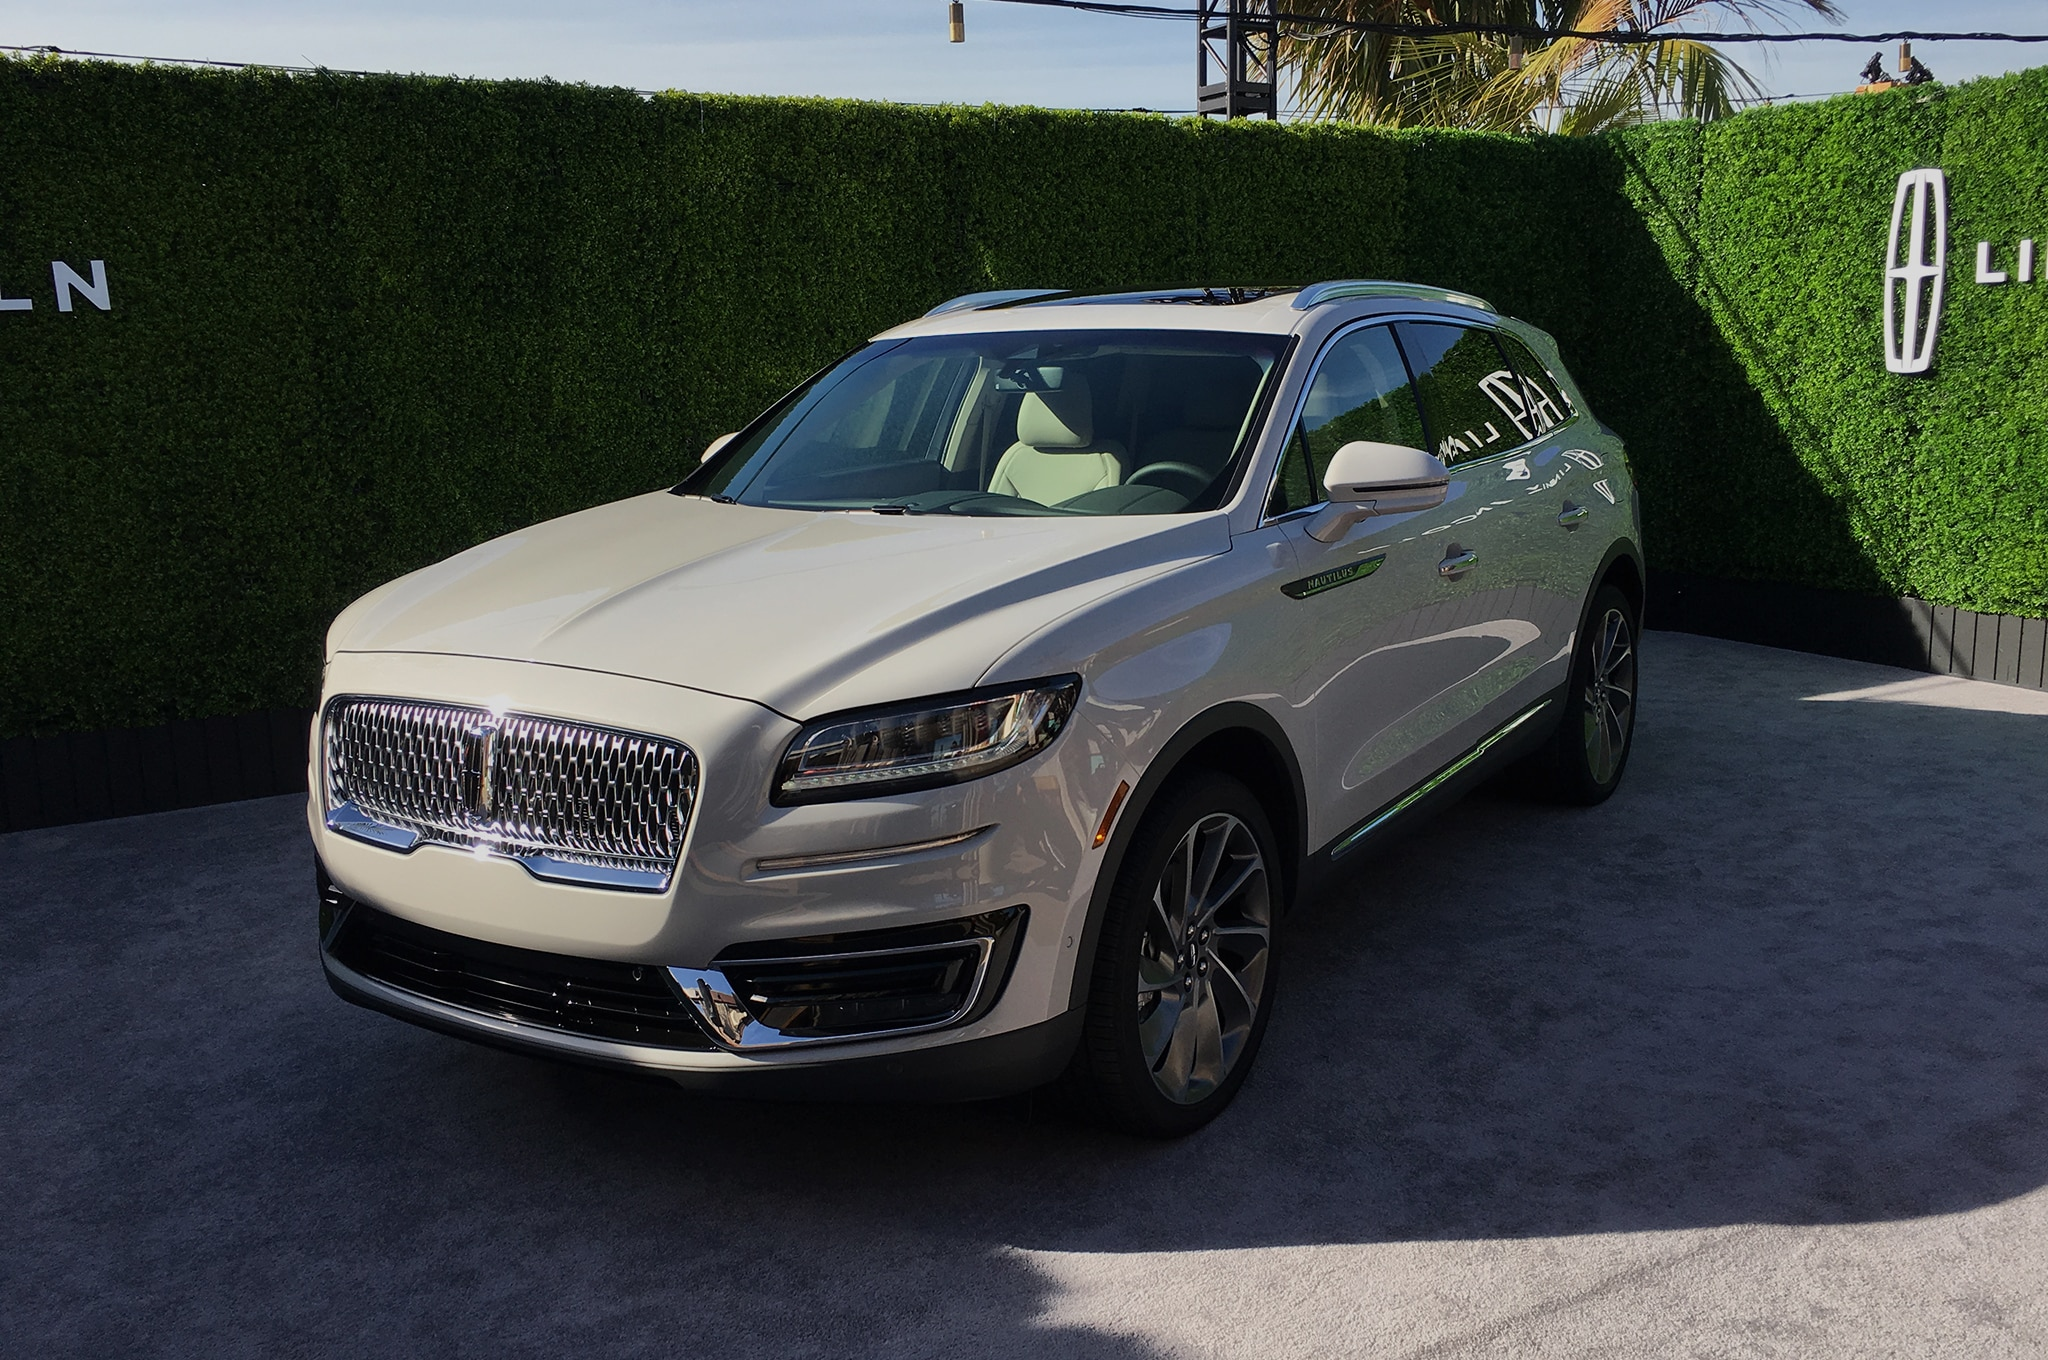 Lincoln Nautilus Price >> VWVortex.com - 2019 Lincoln Nautilus Is The Facelifted MKX